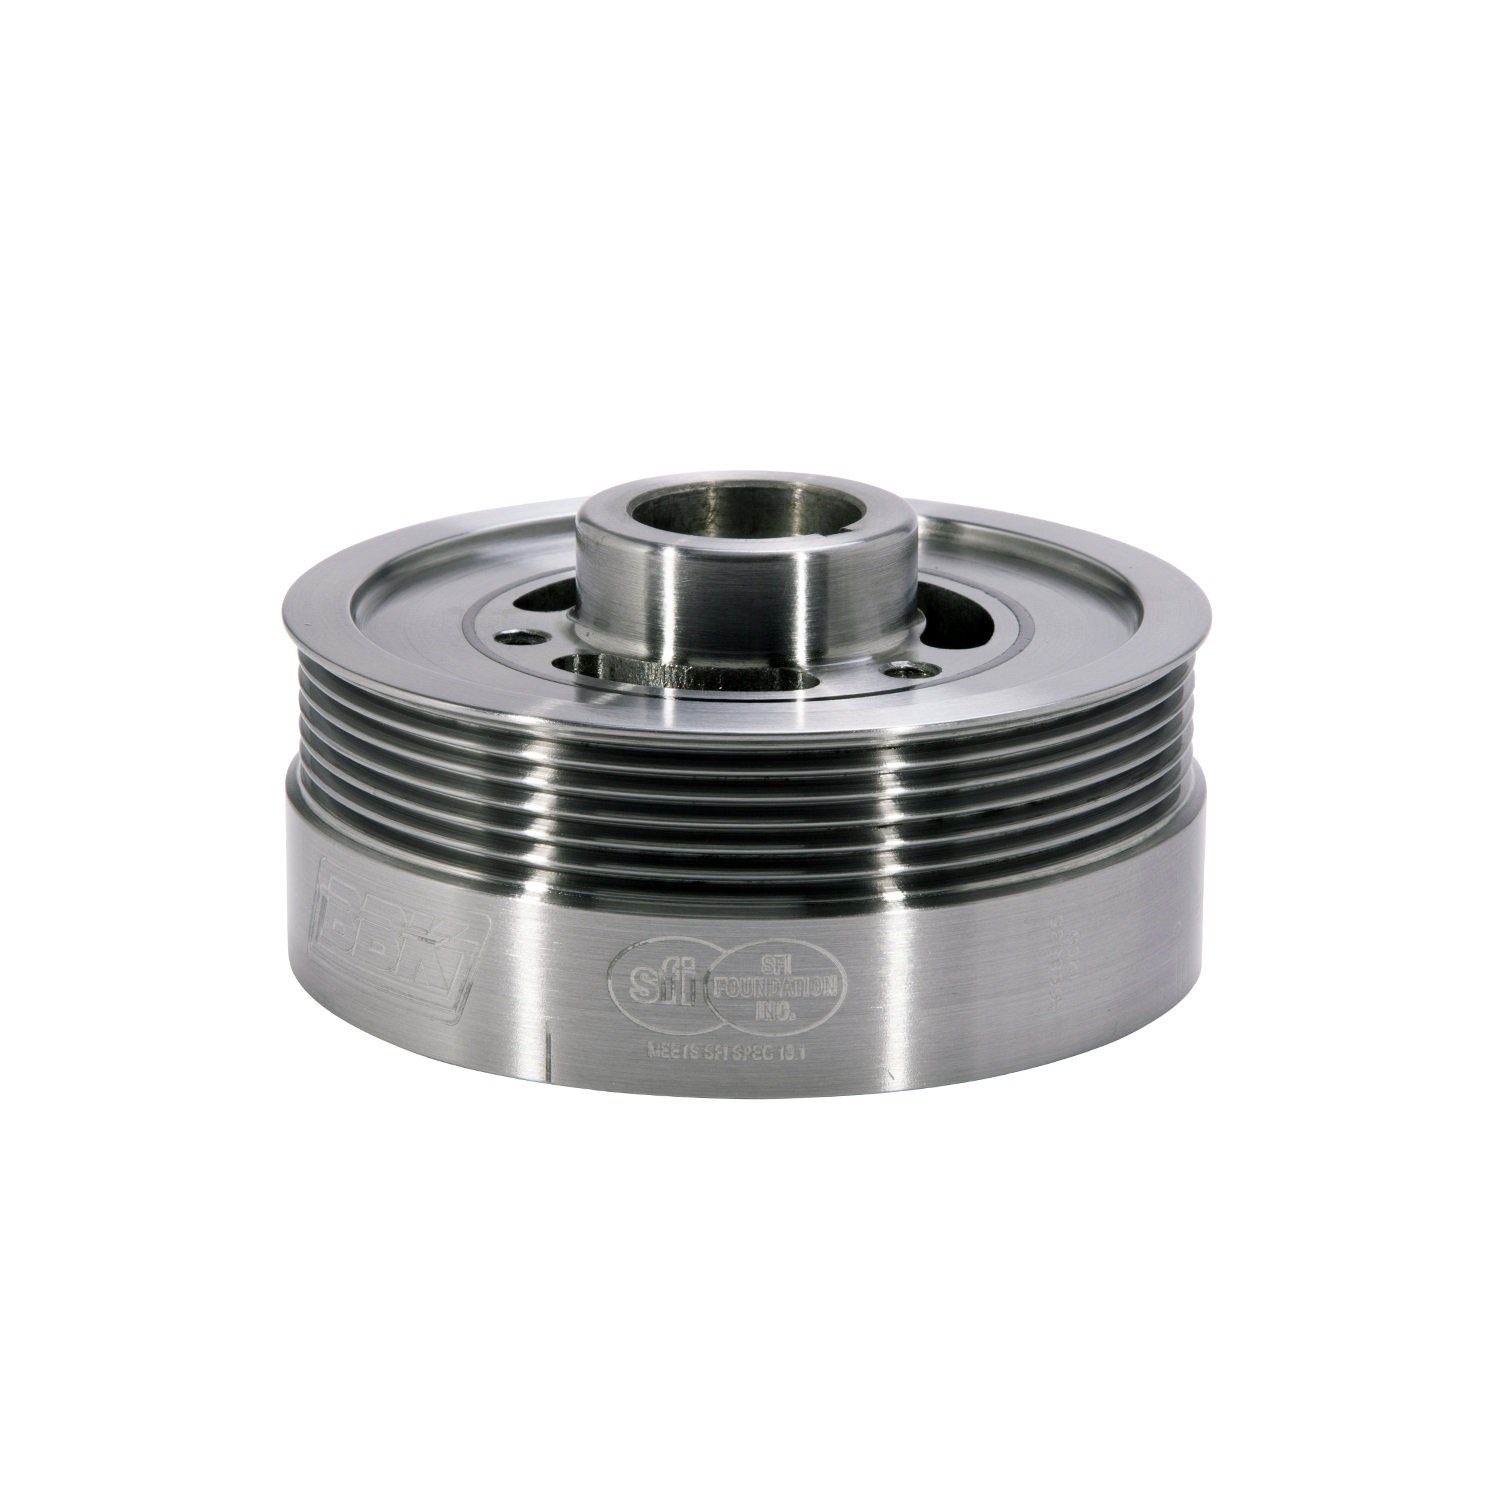 BBK 1653 Underdrive Pulley Kit for Ford Mustang 4.6L-3V GT - SFI Approved Crank Pulley - CNC Machined Lightweight Aluminum WP by BBK Performance (Image #1)